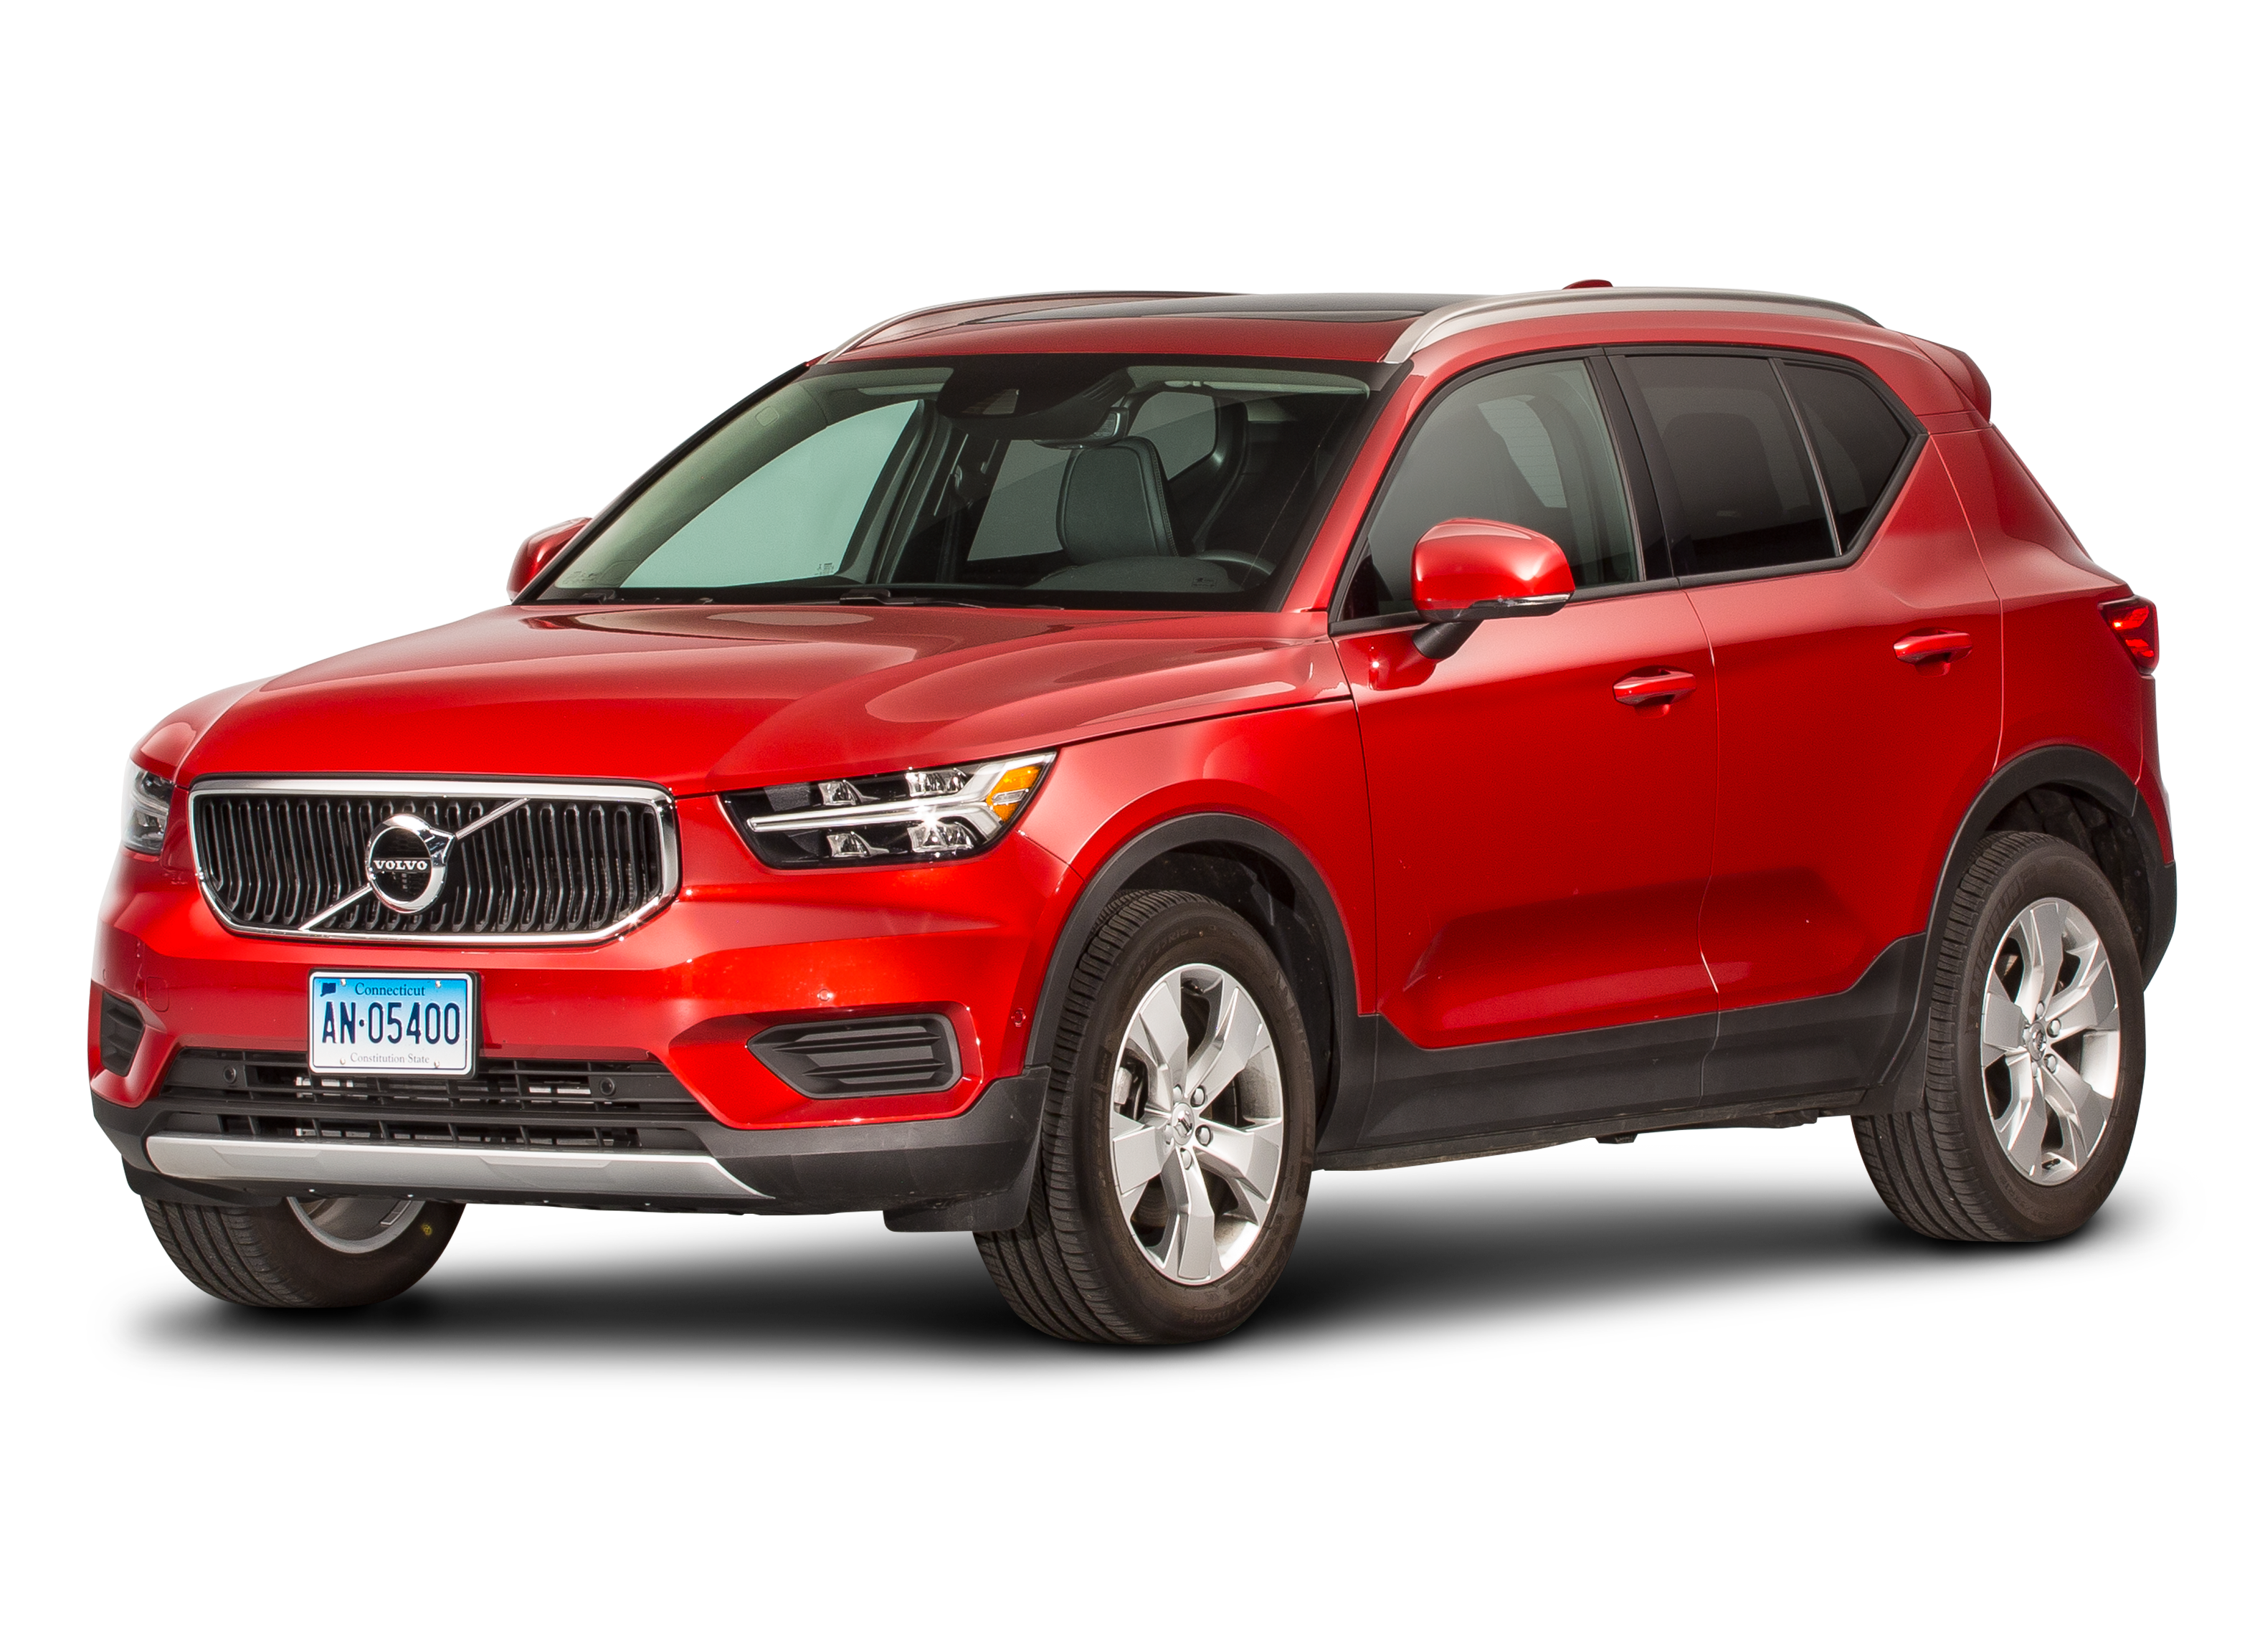 a review of the sports utility vehicles suv The suv reviews have talked about that recognition from your vehicle will increase with time something that lots of mercedes benz m course reviews will describe is this truth vehicle isn't really as cumbersome as other sports utility vehicles.